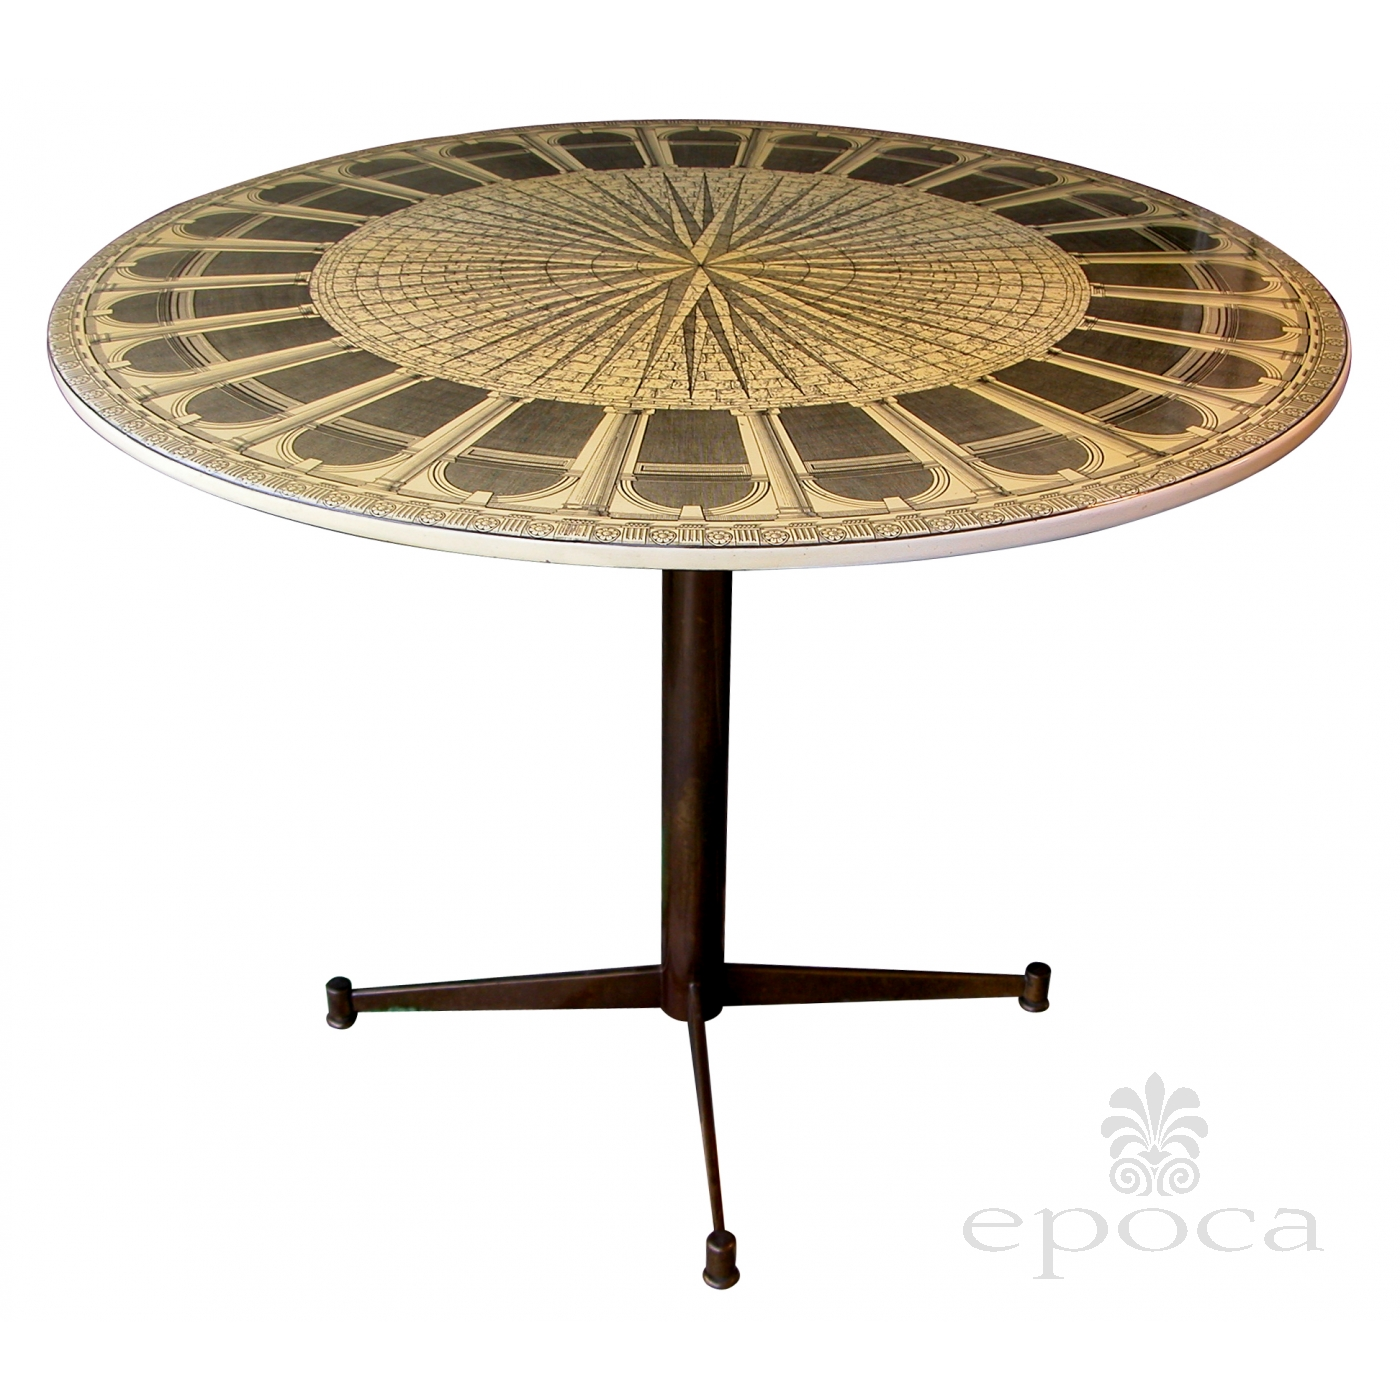 a fine italian mid century circular center table by piero